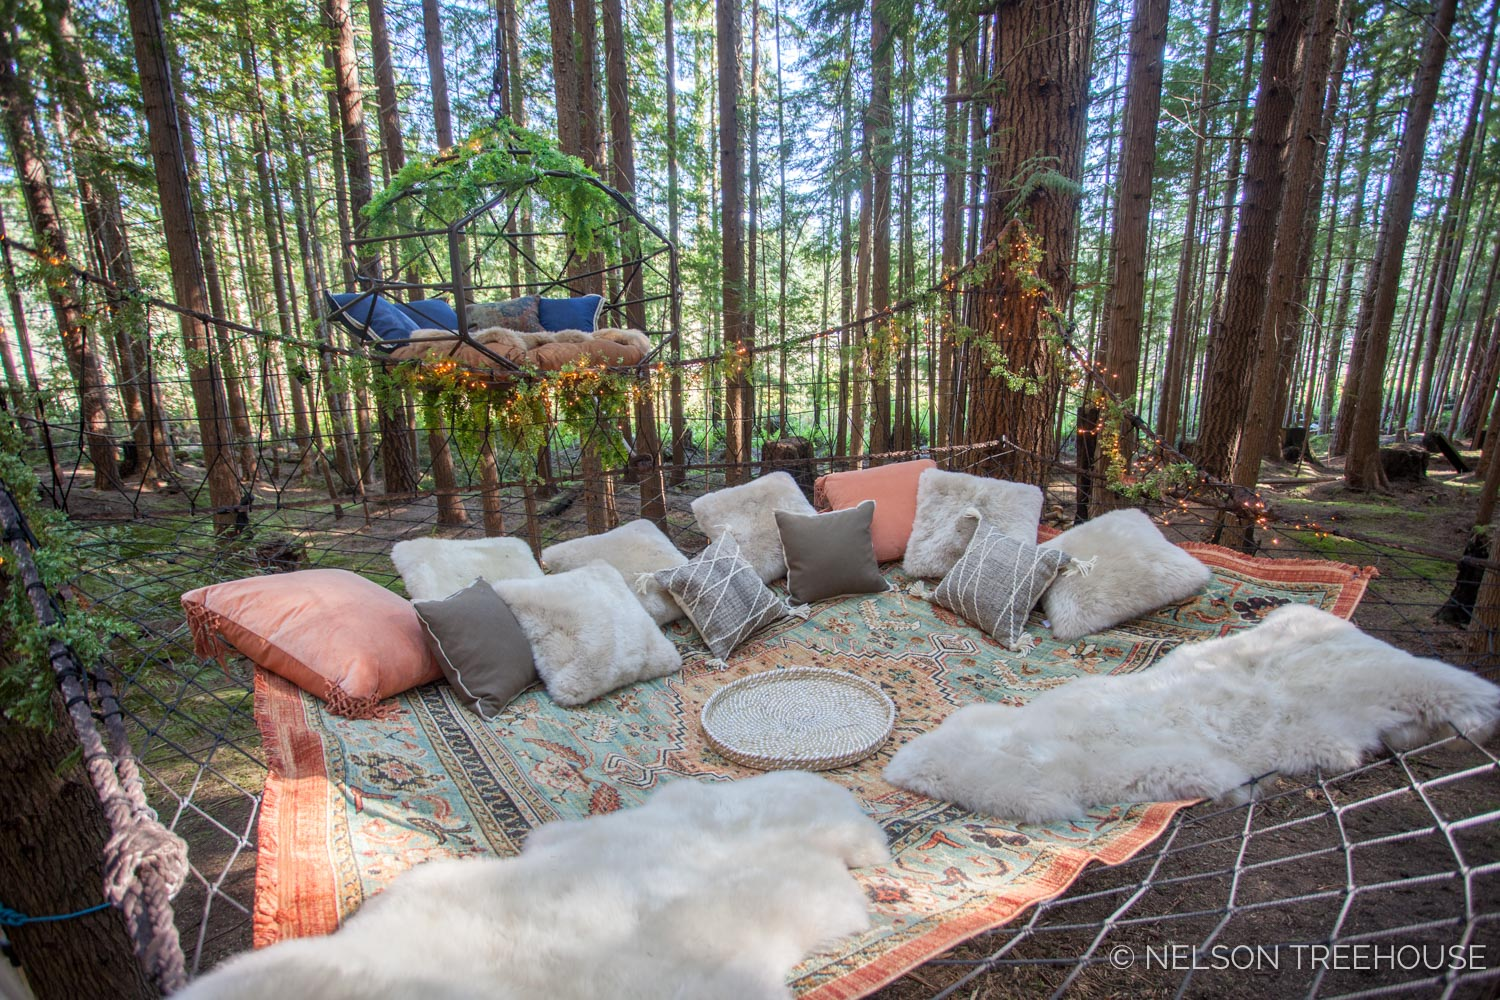 Treetop-Movie-Theater-2018-Nelson-Treehouse-800.jpg